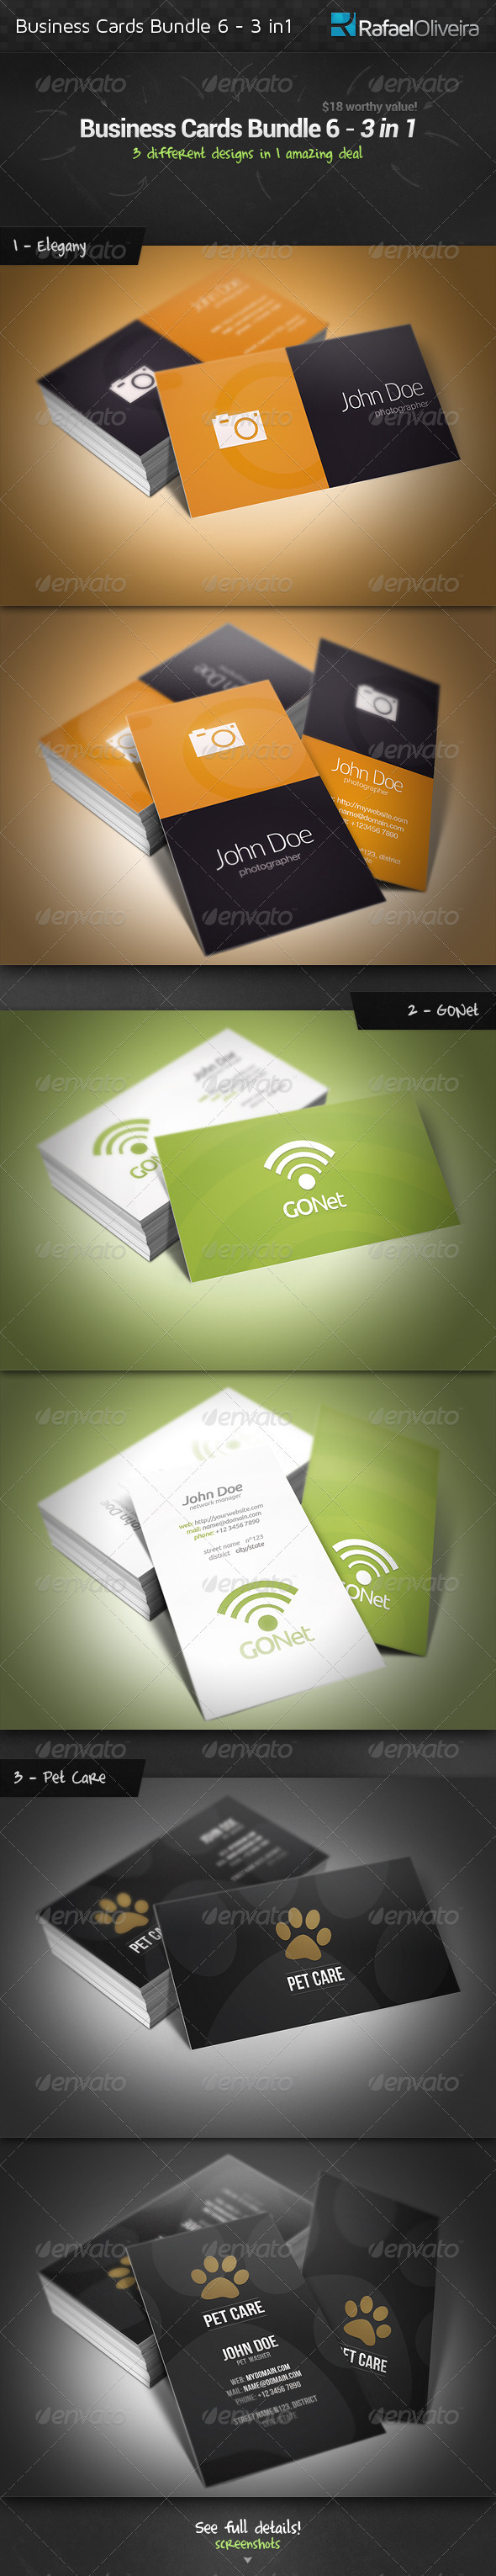 Business Cards Bundle 6 - 3 in 1 - Corporate Business Cards